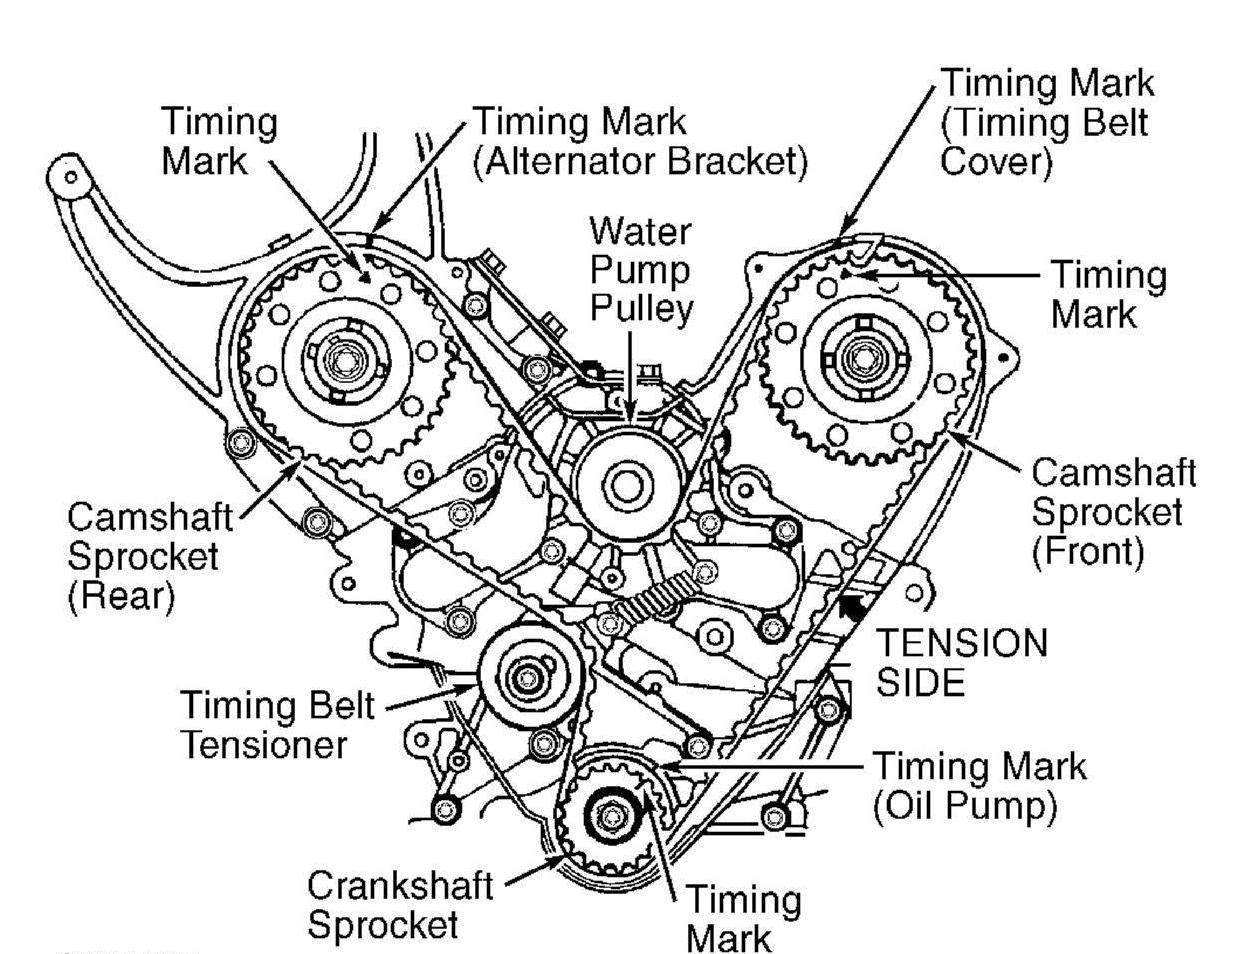 2001 Mitsubishi Eclipse Timing Belt Diagram Details. 2001 Mitsubishi Eclipse Timing Belt Diagram. Mitsubishi. Timing Belt Diagram 2001 Mitsubishi Spyder At Scoala.co